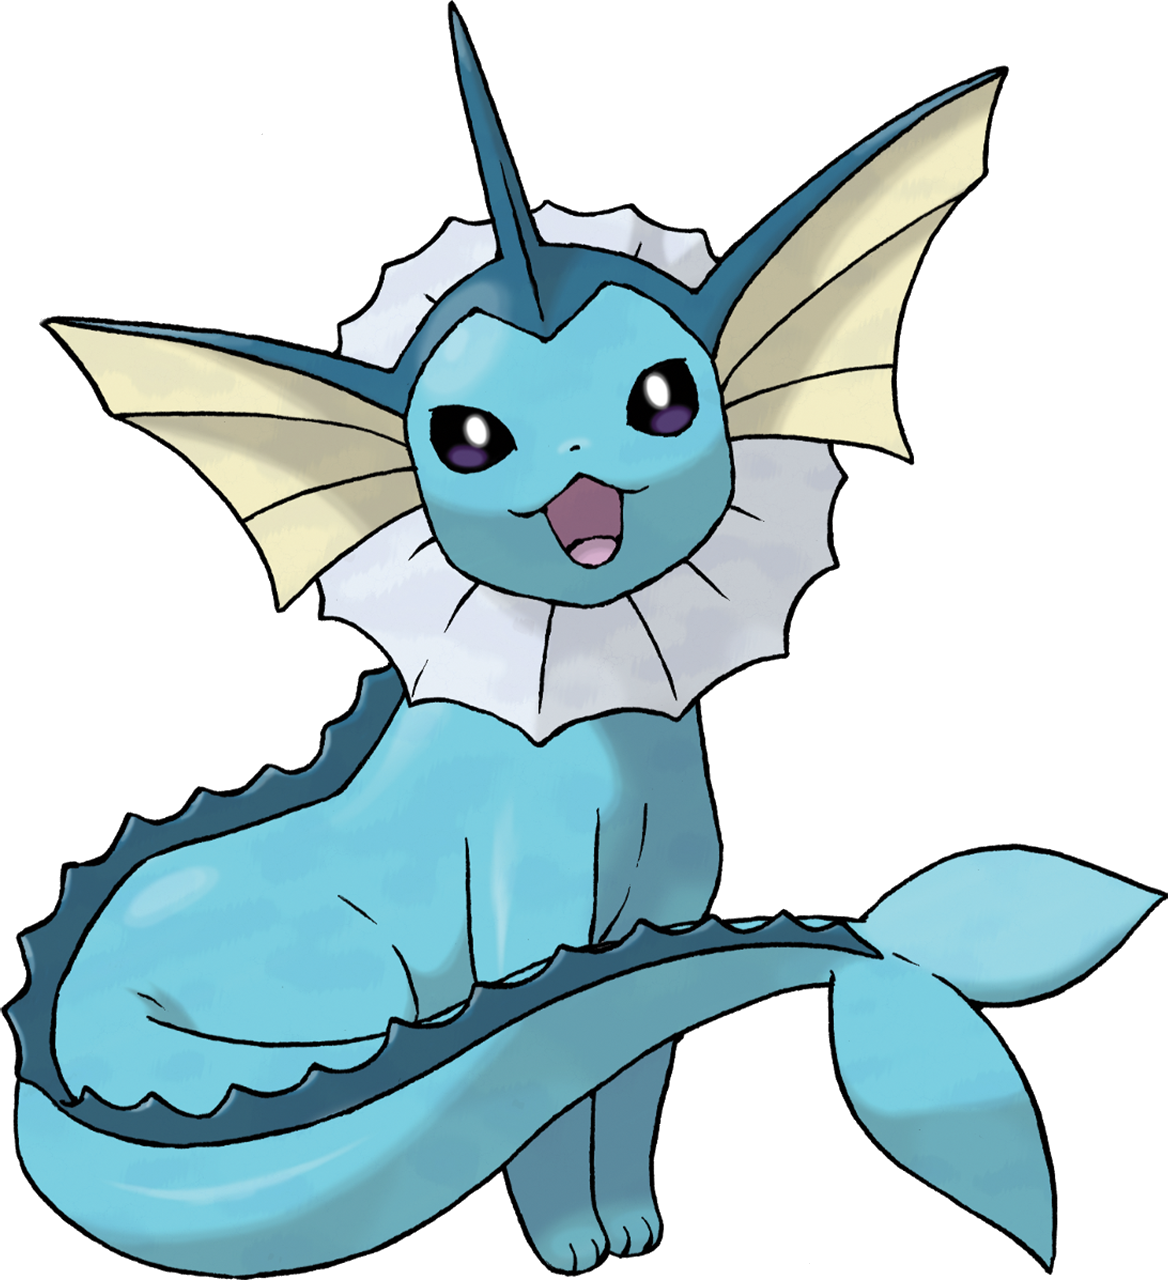 About your character: Sugimori_134